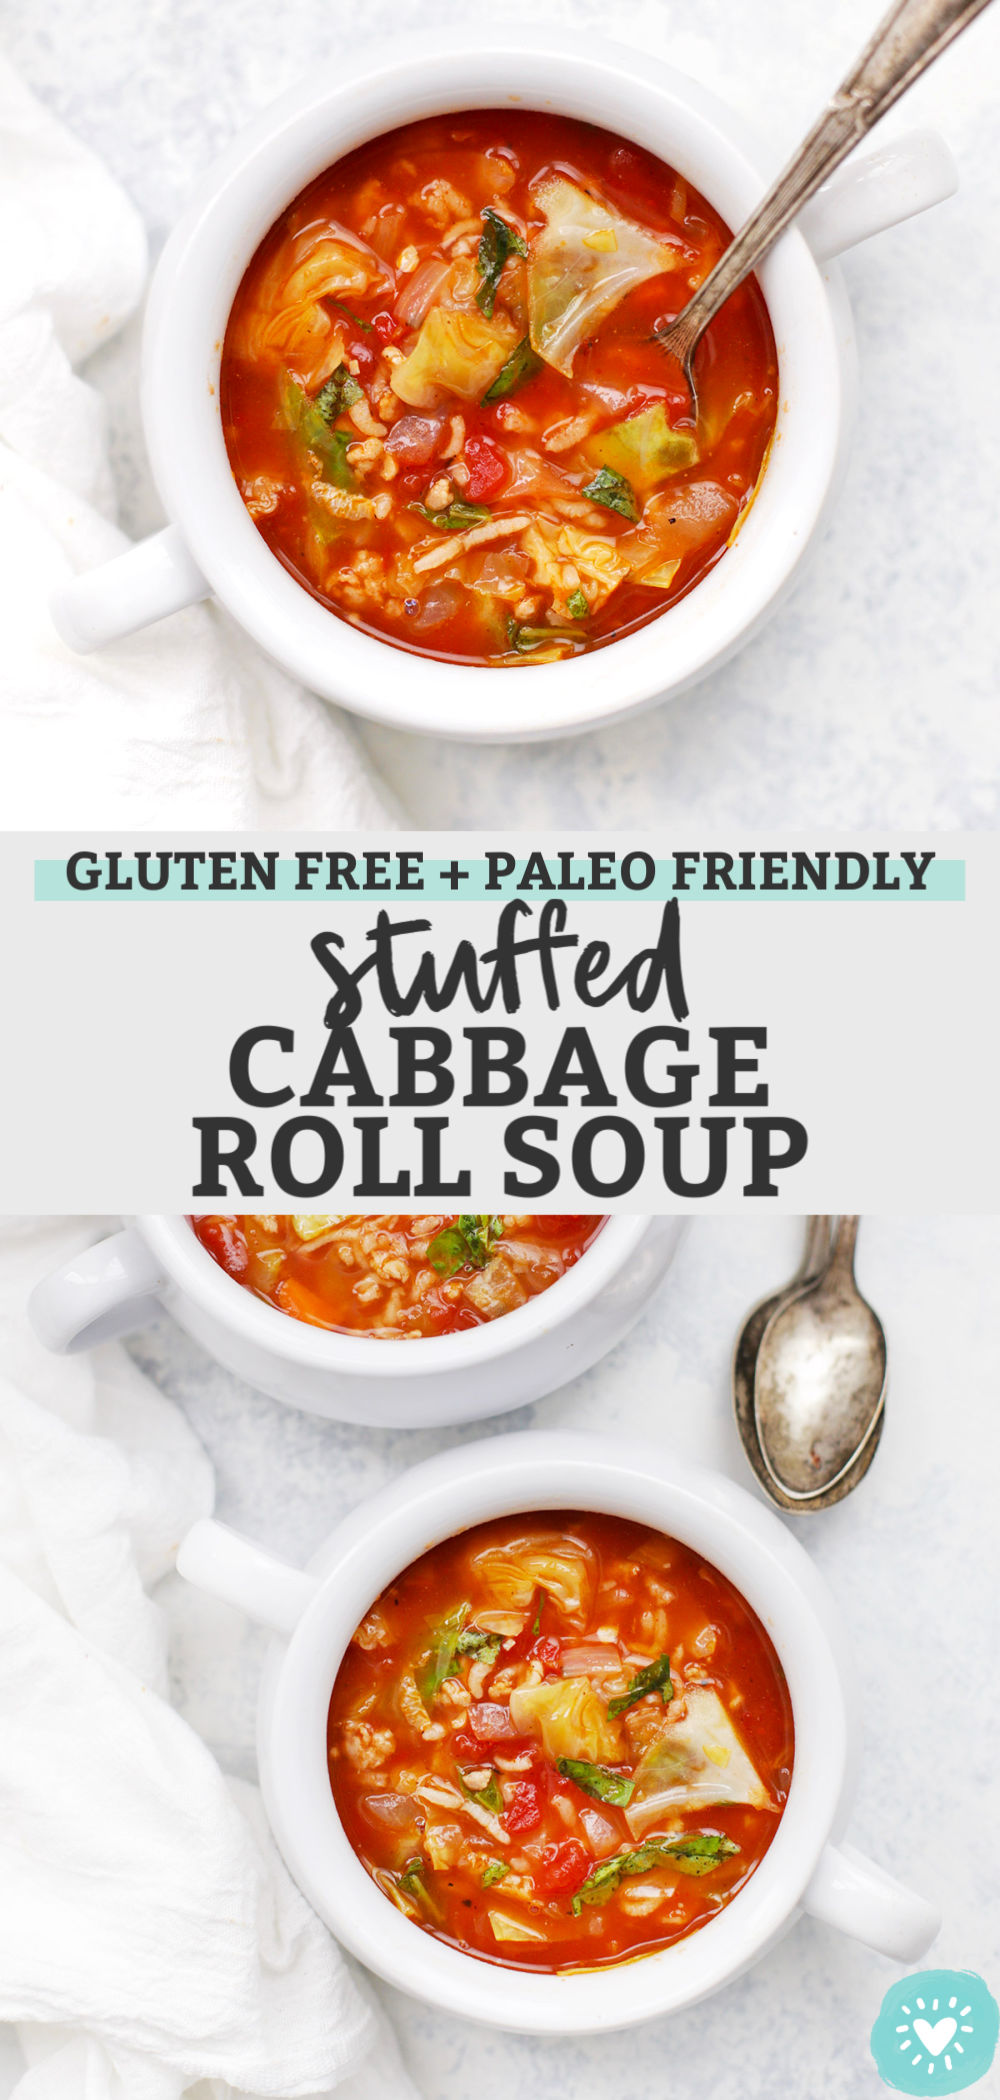 Stuffed Cabbage Roll Soup from One Lovely Life